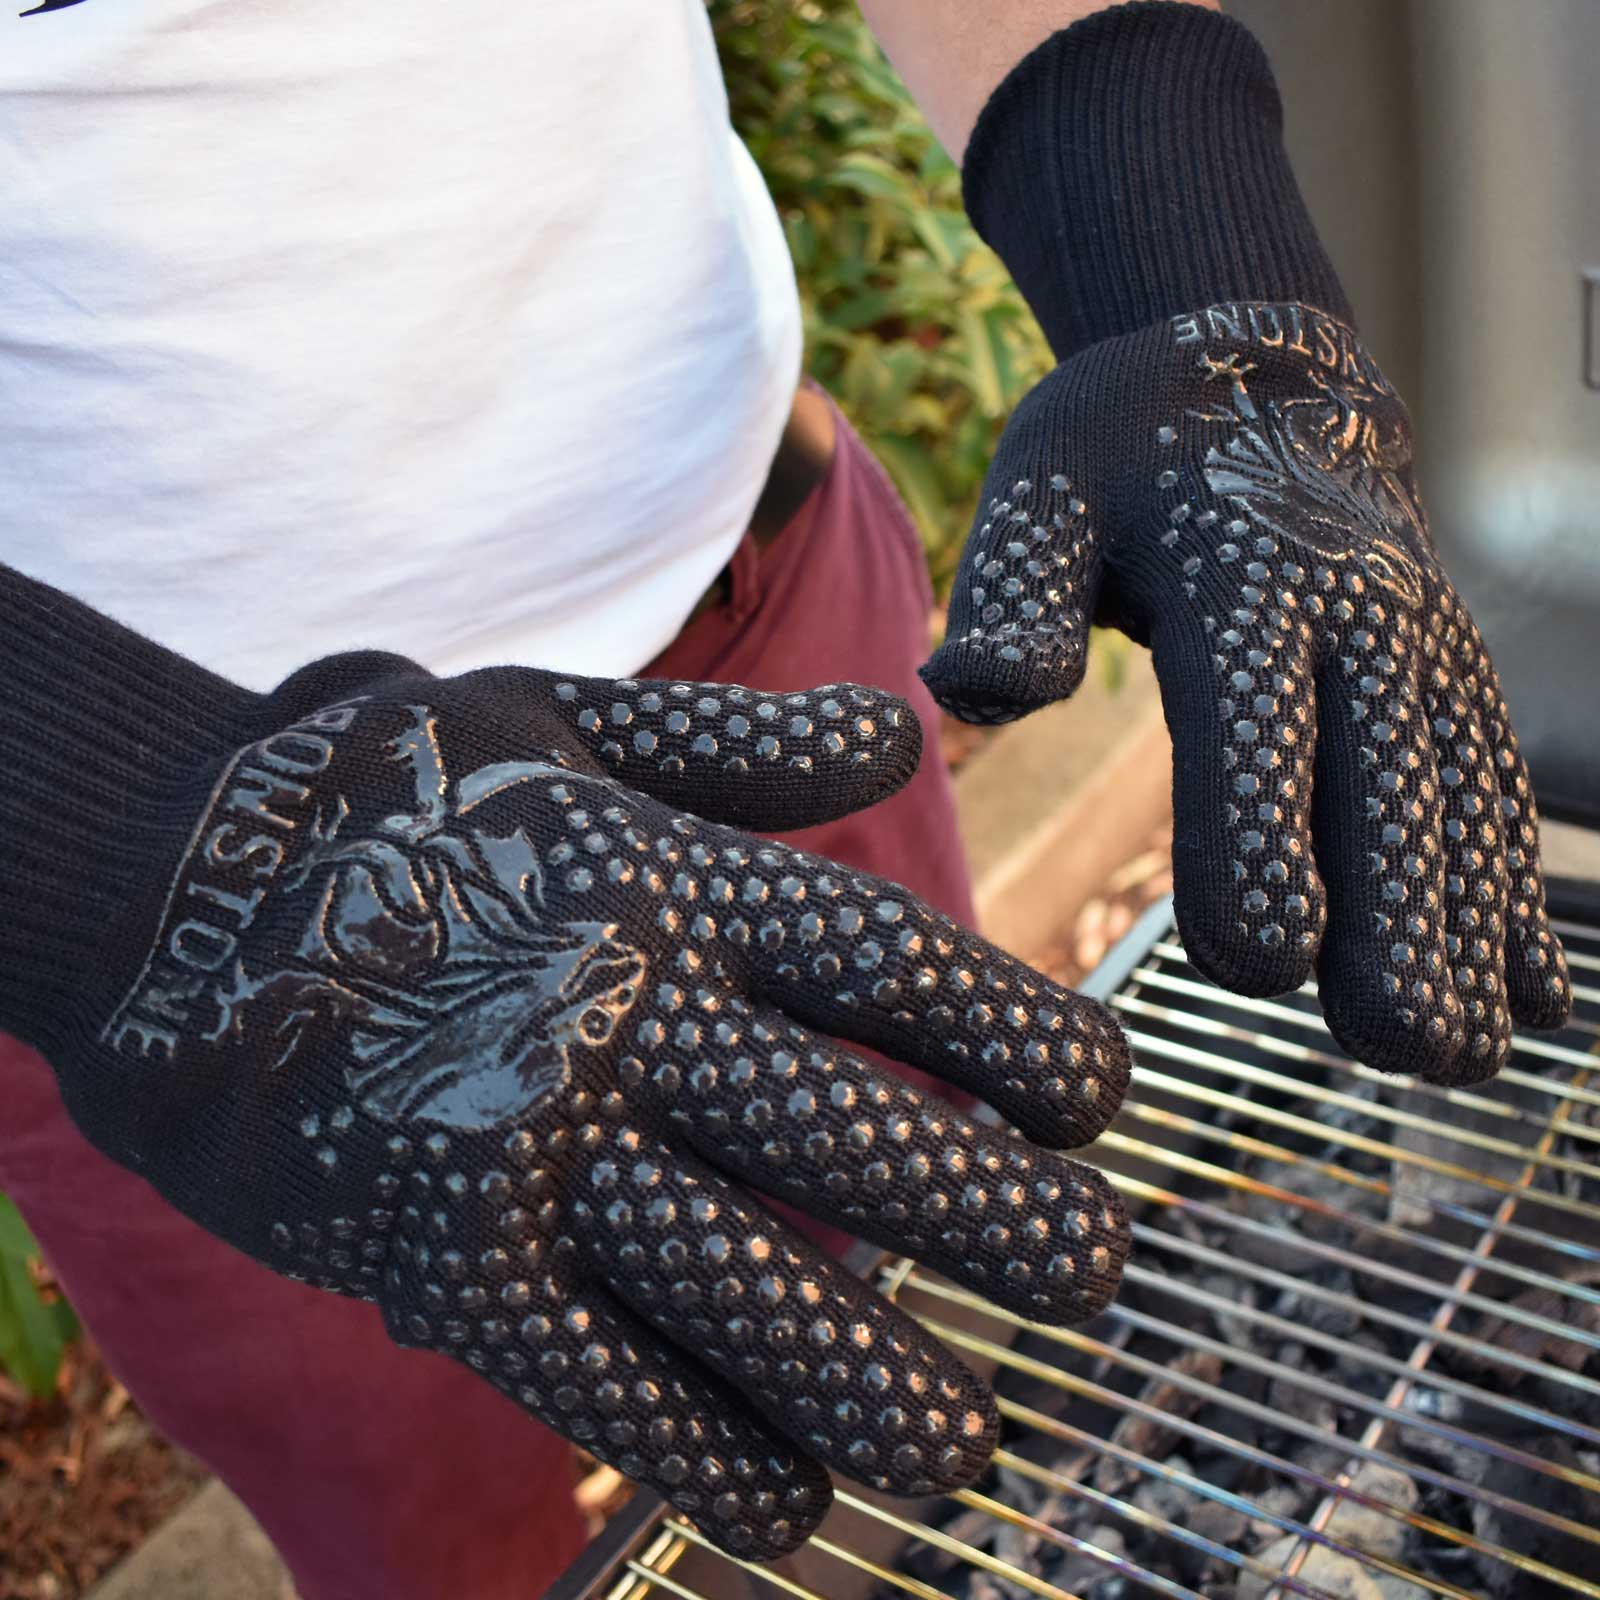 Ironstone-gloves-black5